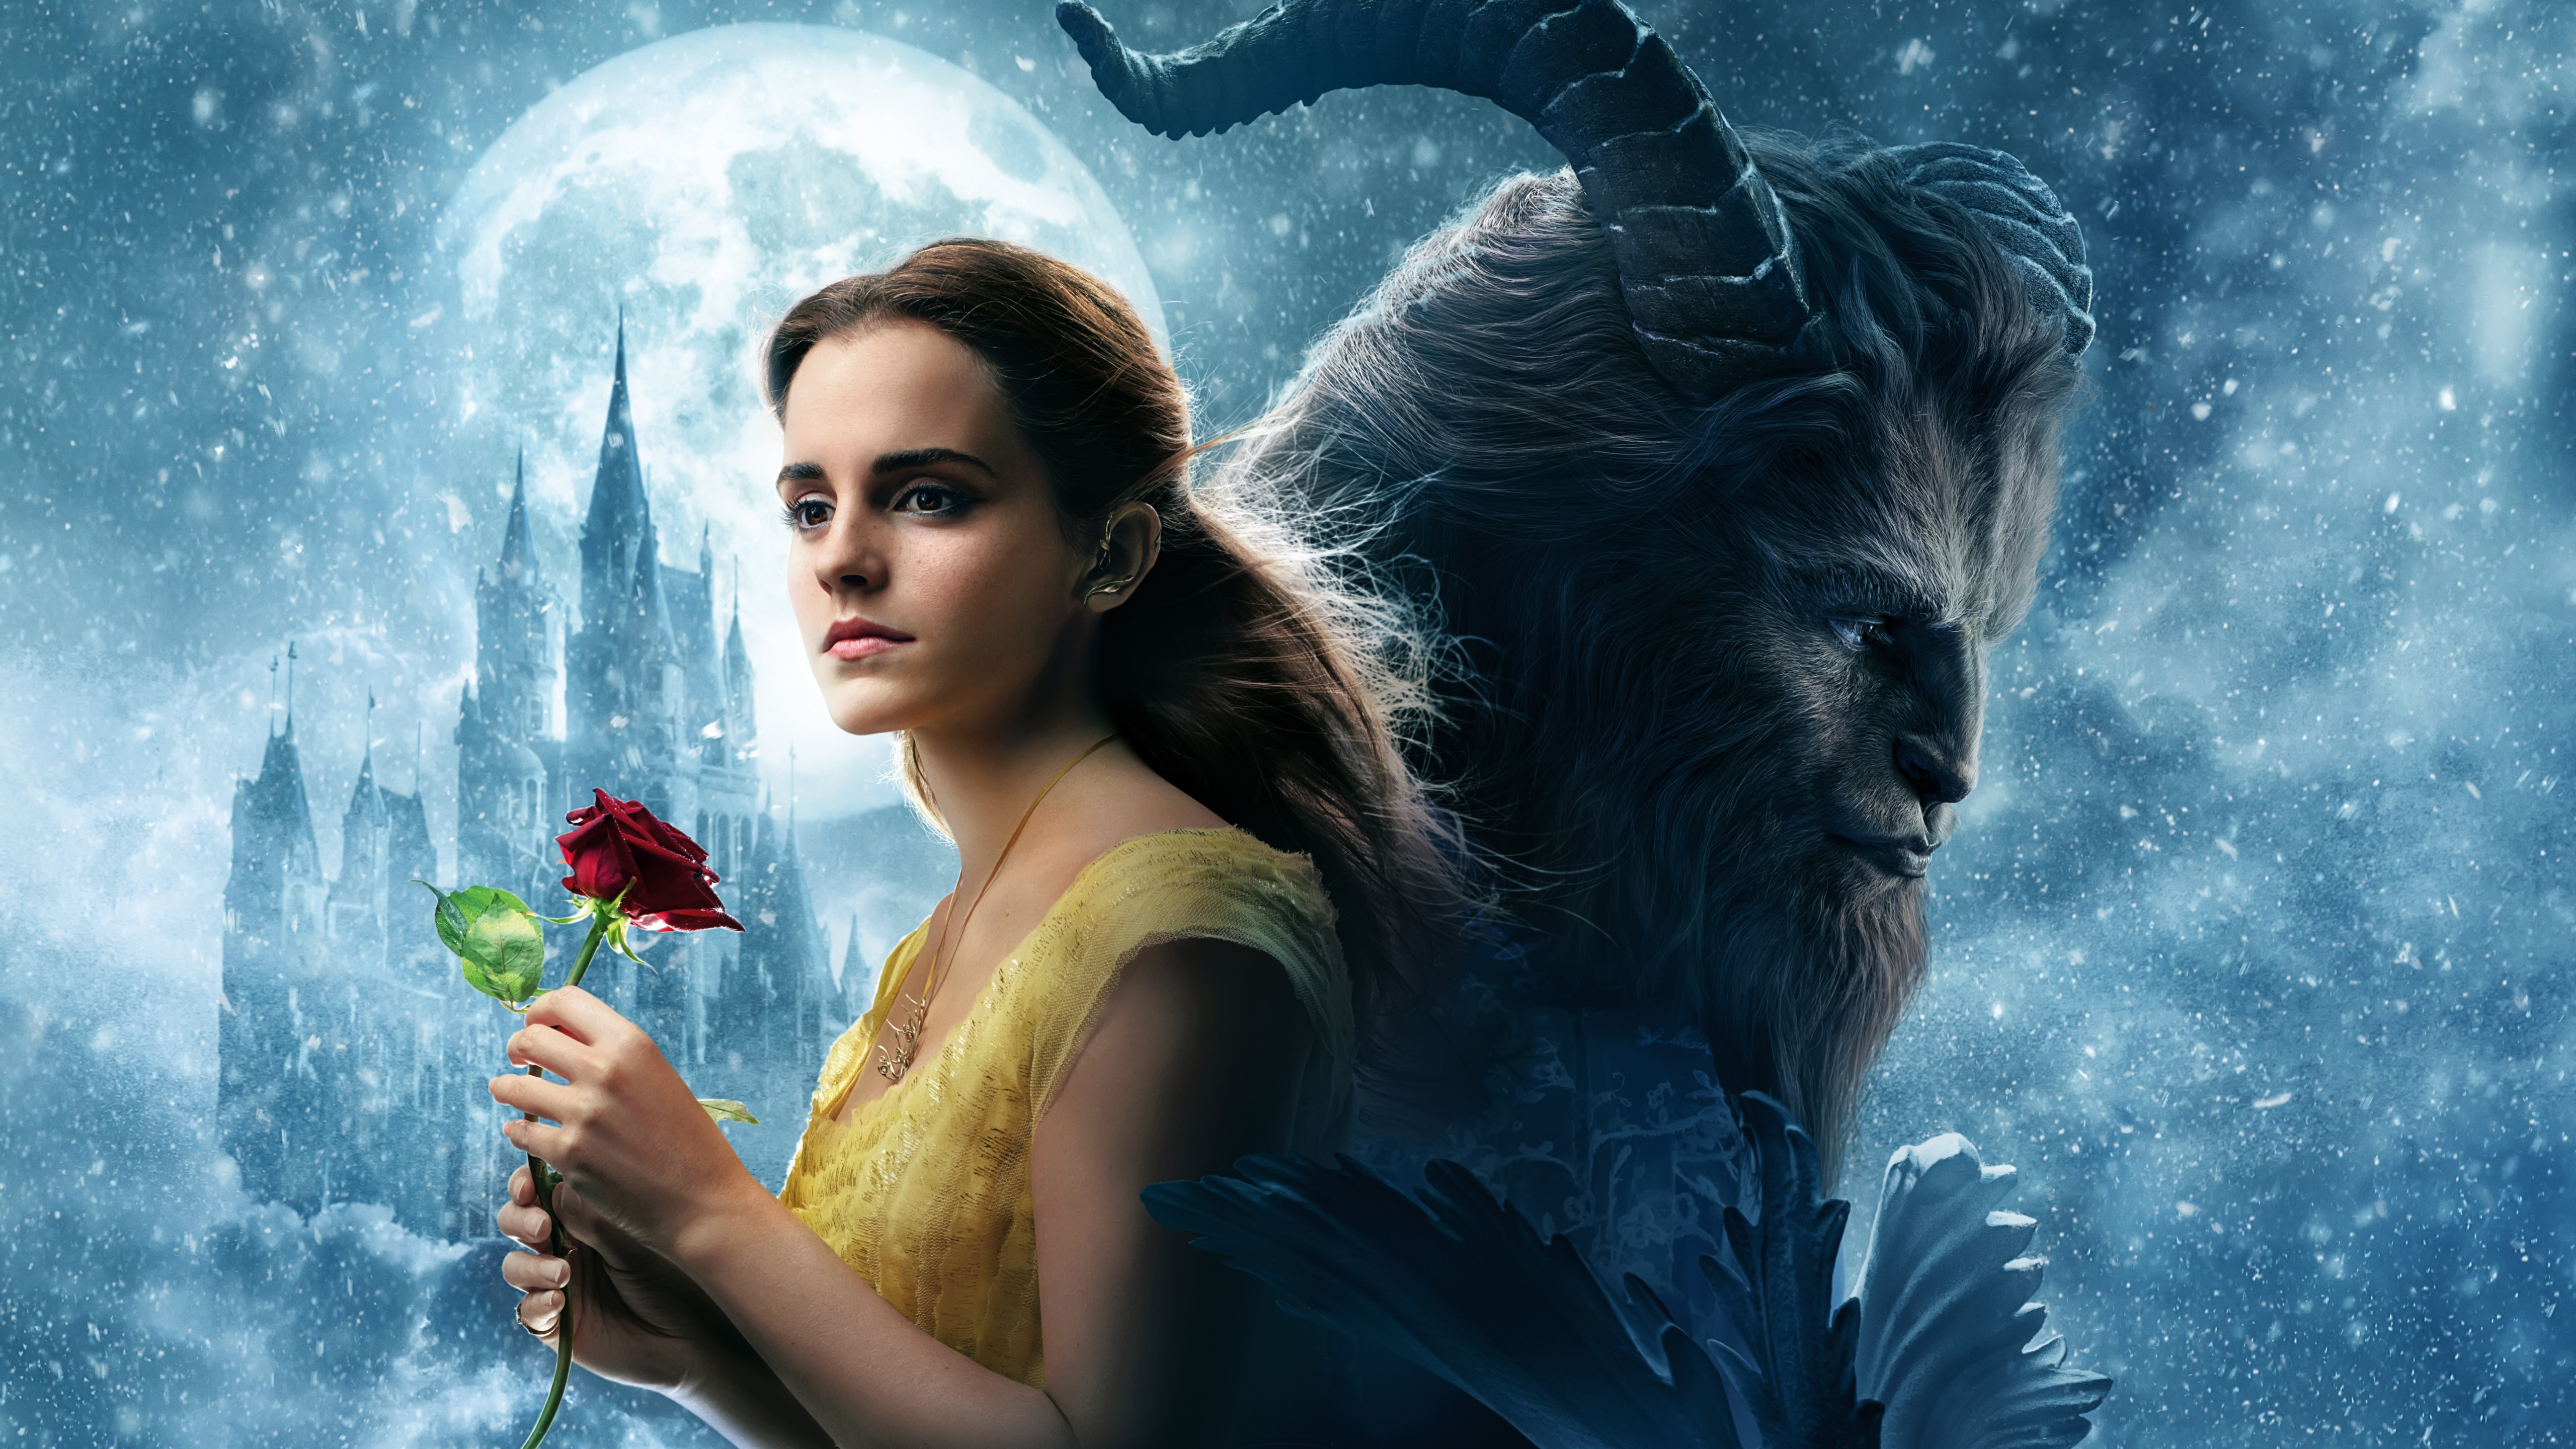 19 beauty and the beast (2017) hd wallpapers | background images